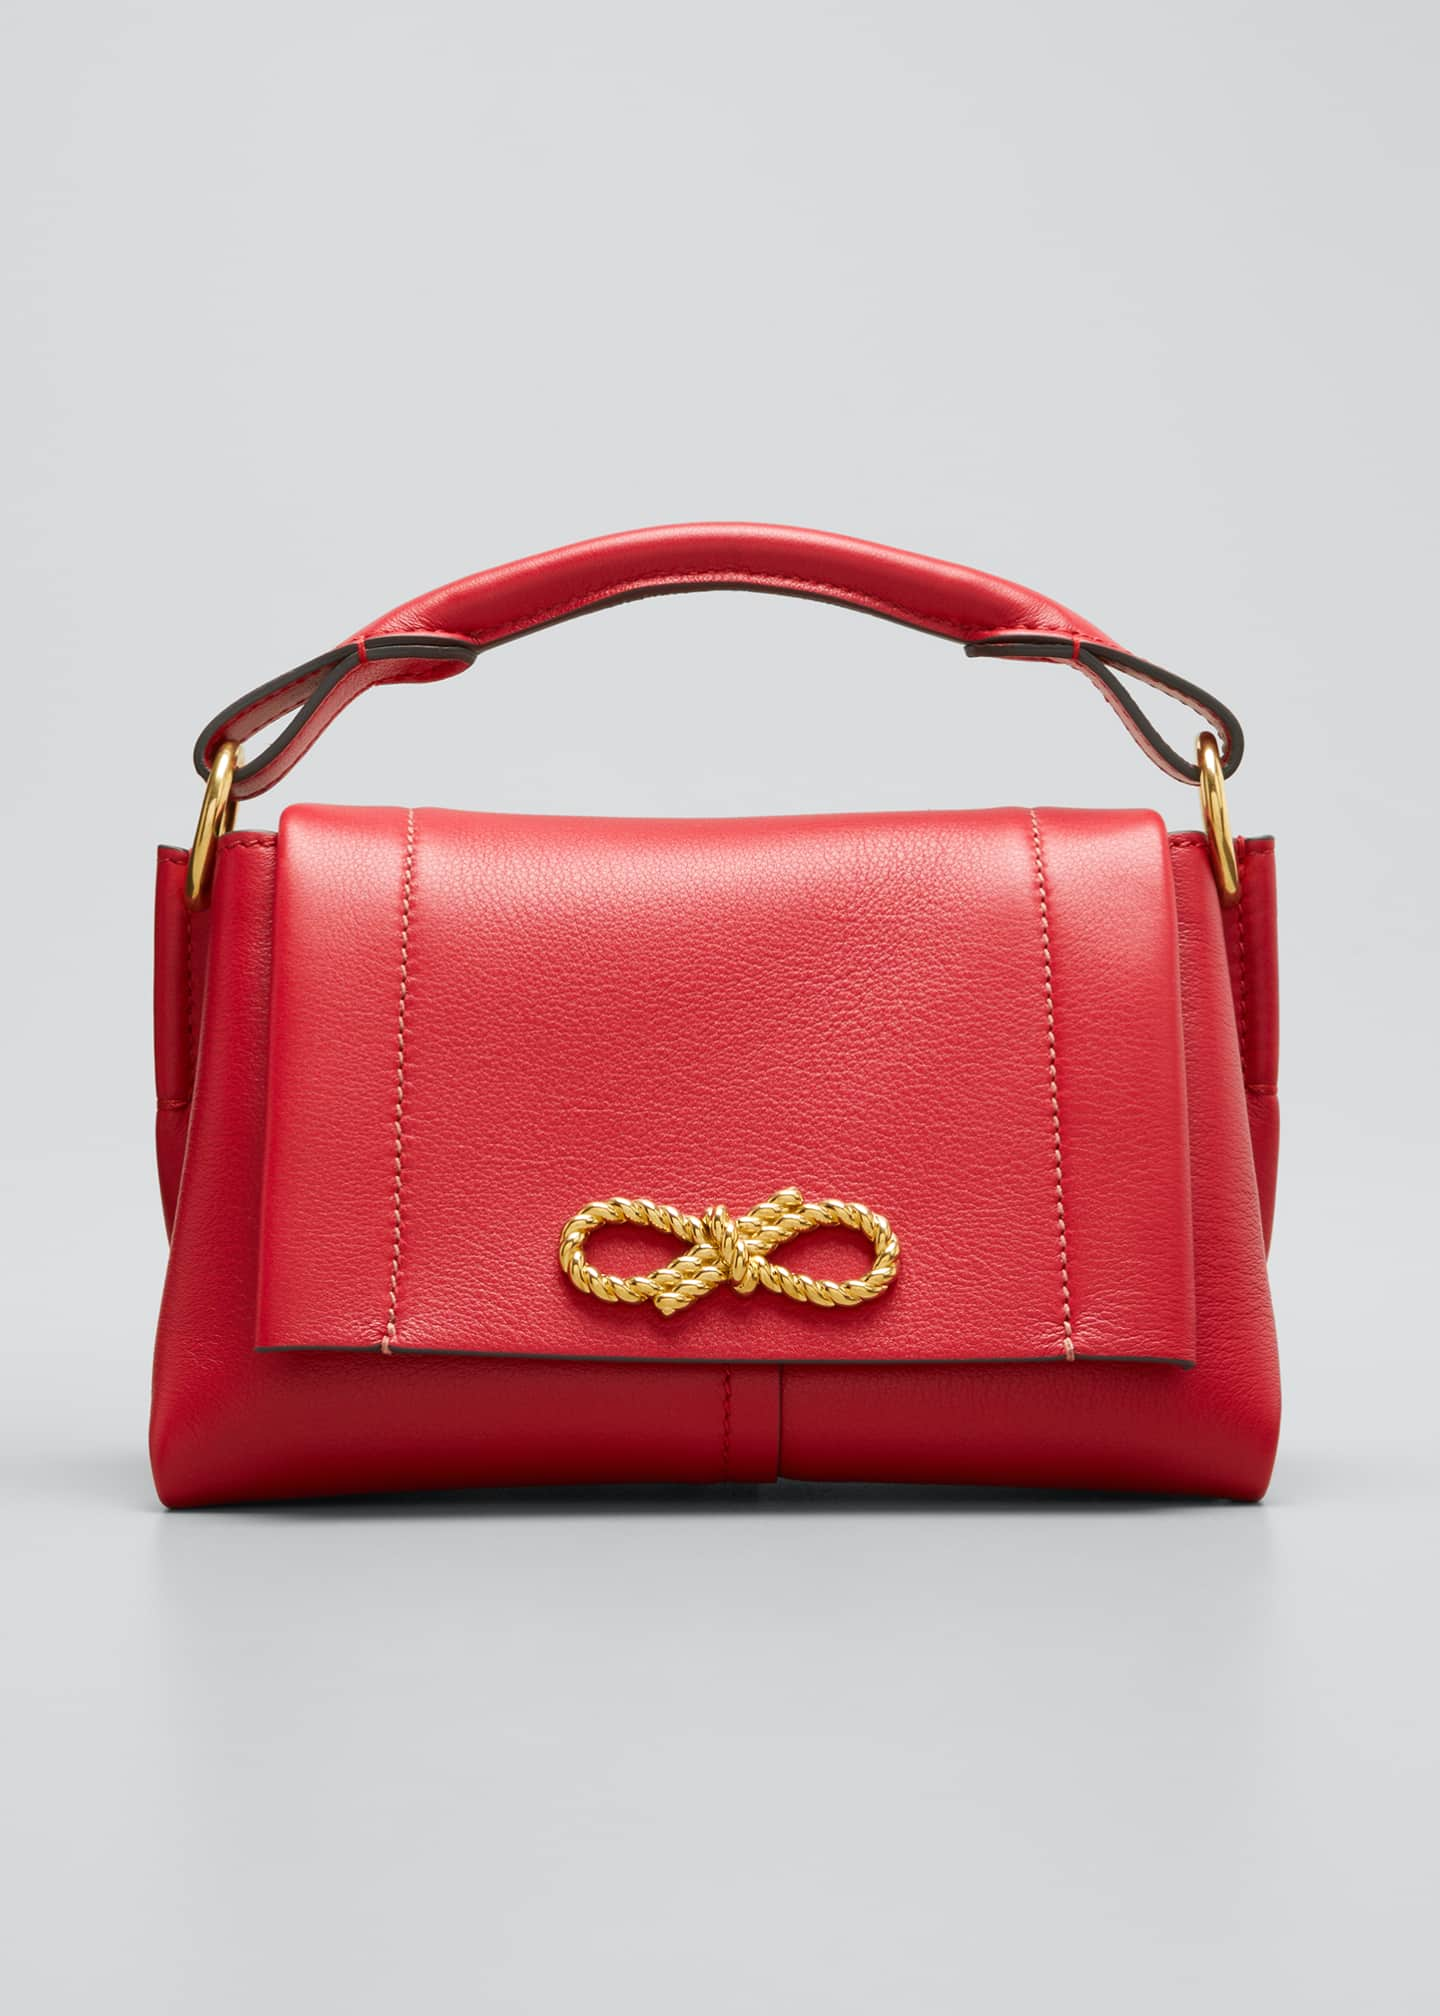 Anya Hindmarch Rope Bow Bag Mini in Soft